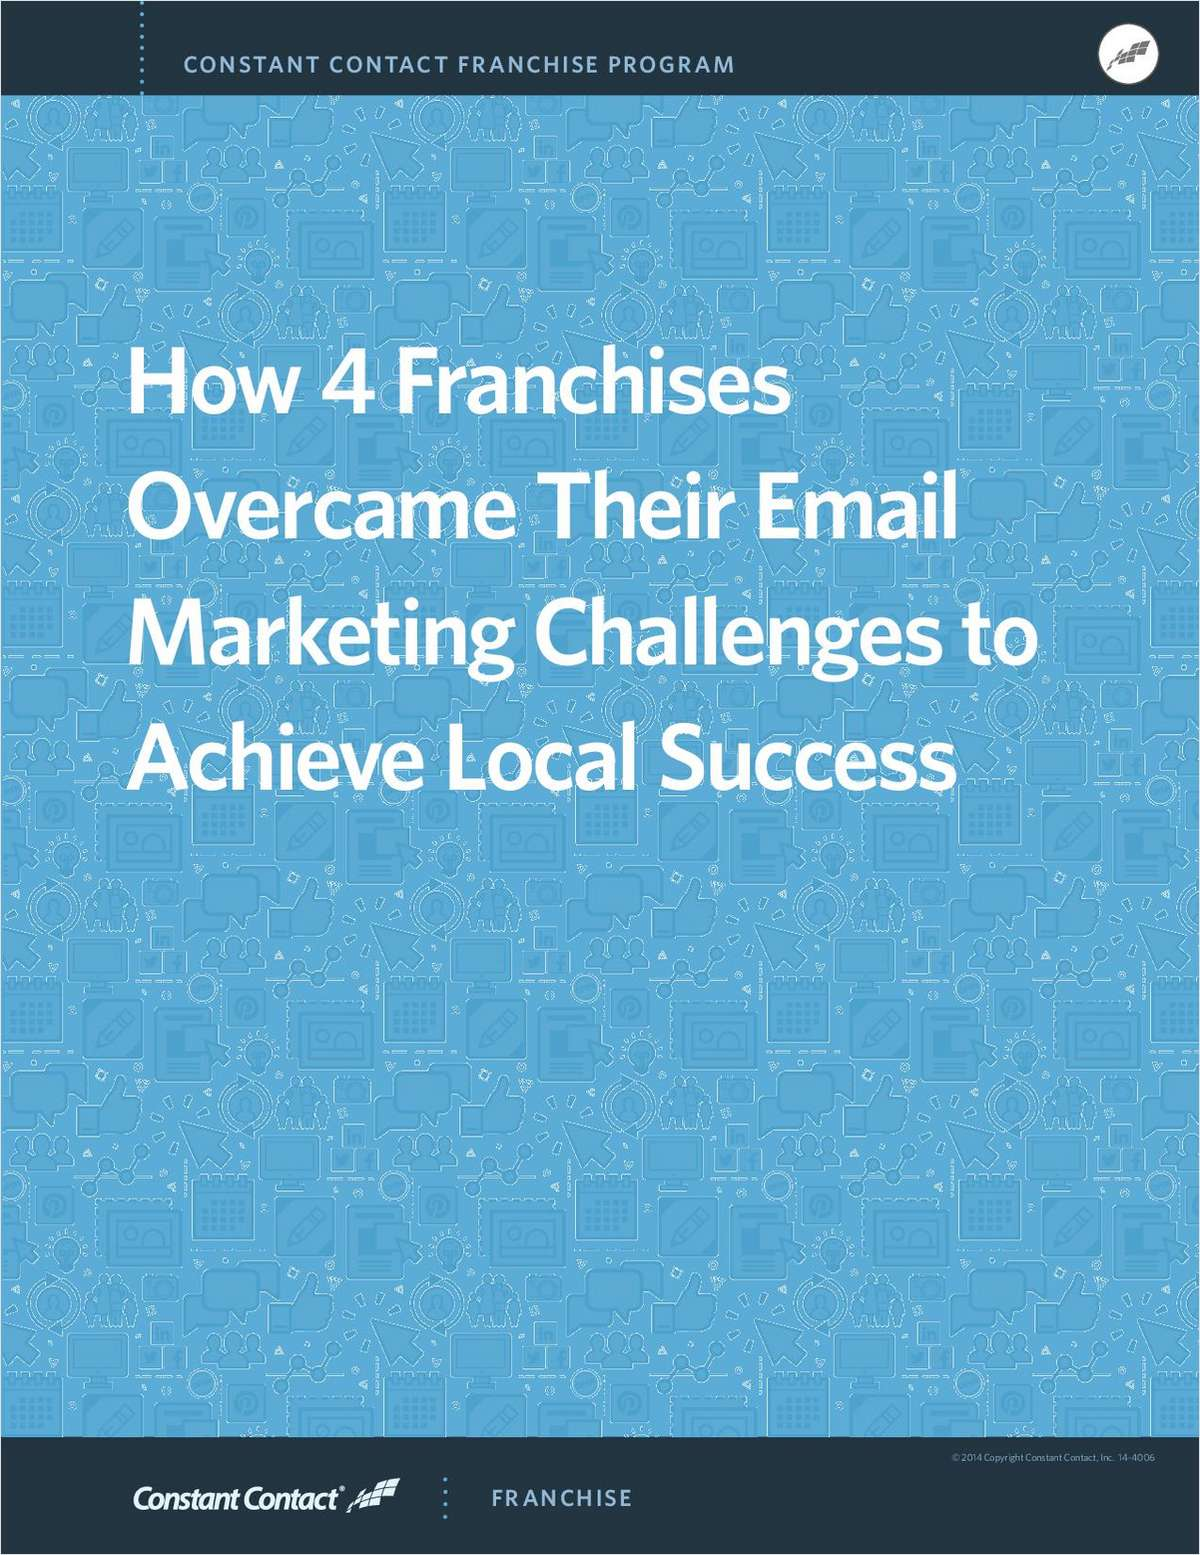 How 4 Franchises Overcame Their Email Marketing Challenges to Achieve Local Success